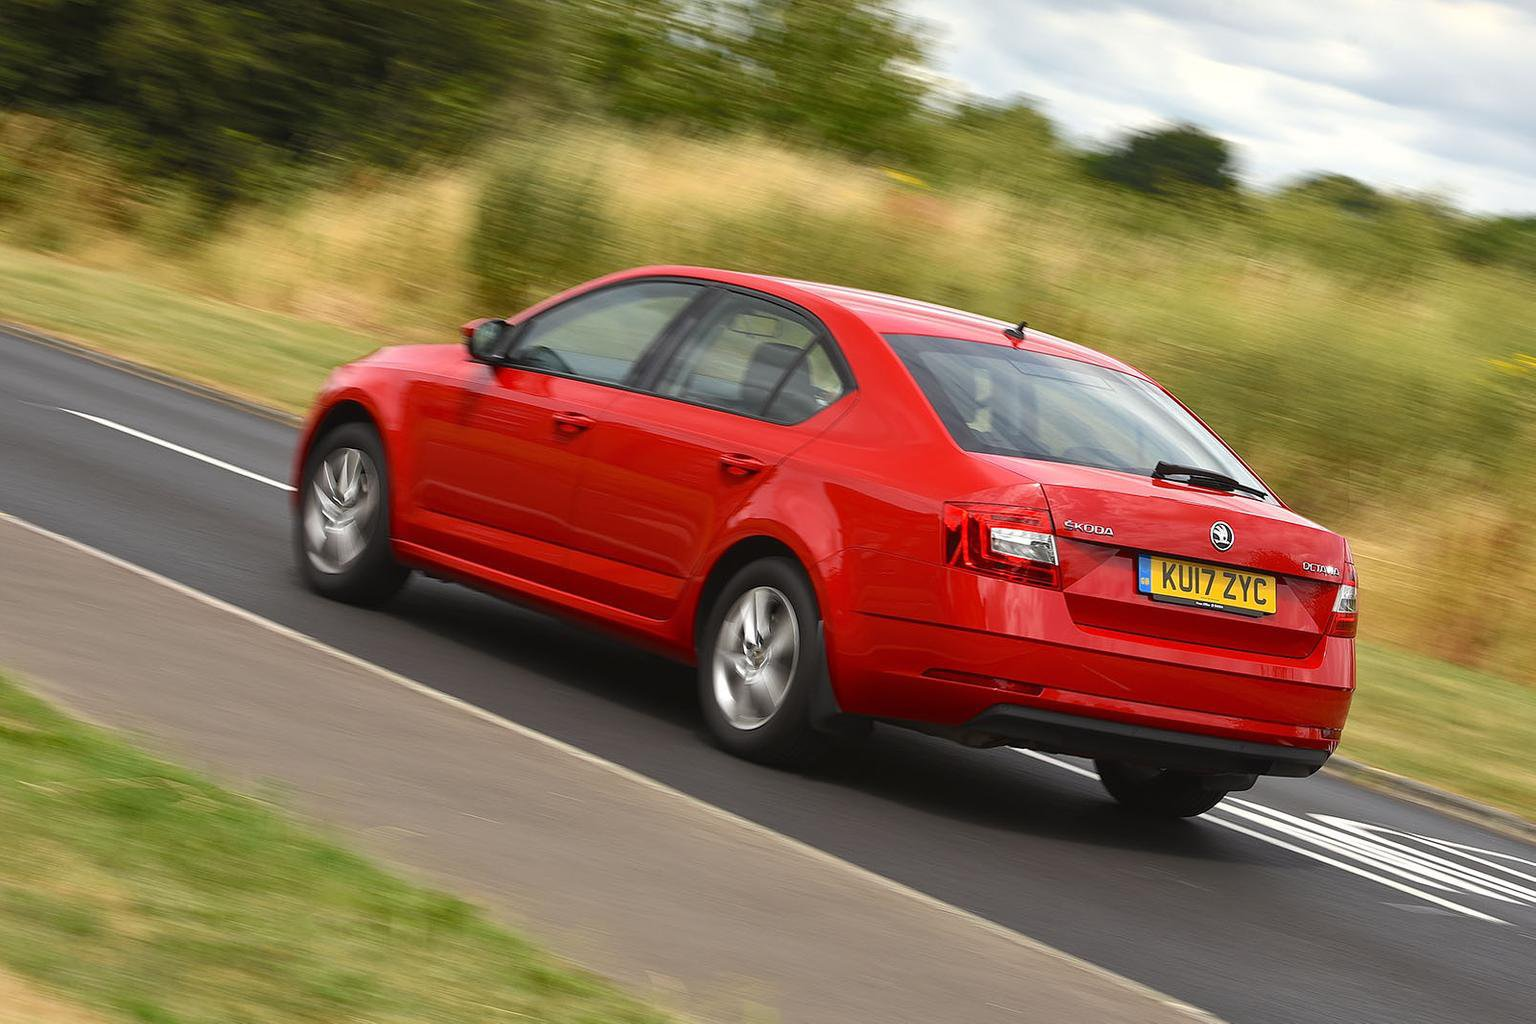 Skoda Octavia long-term review